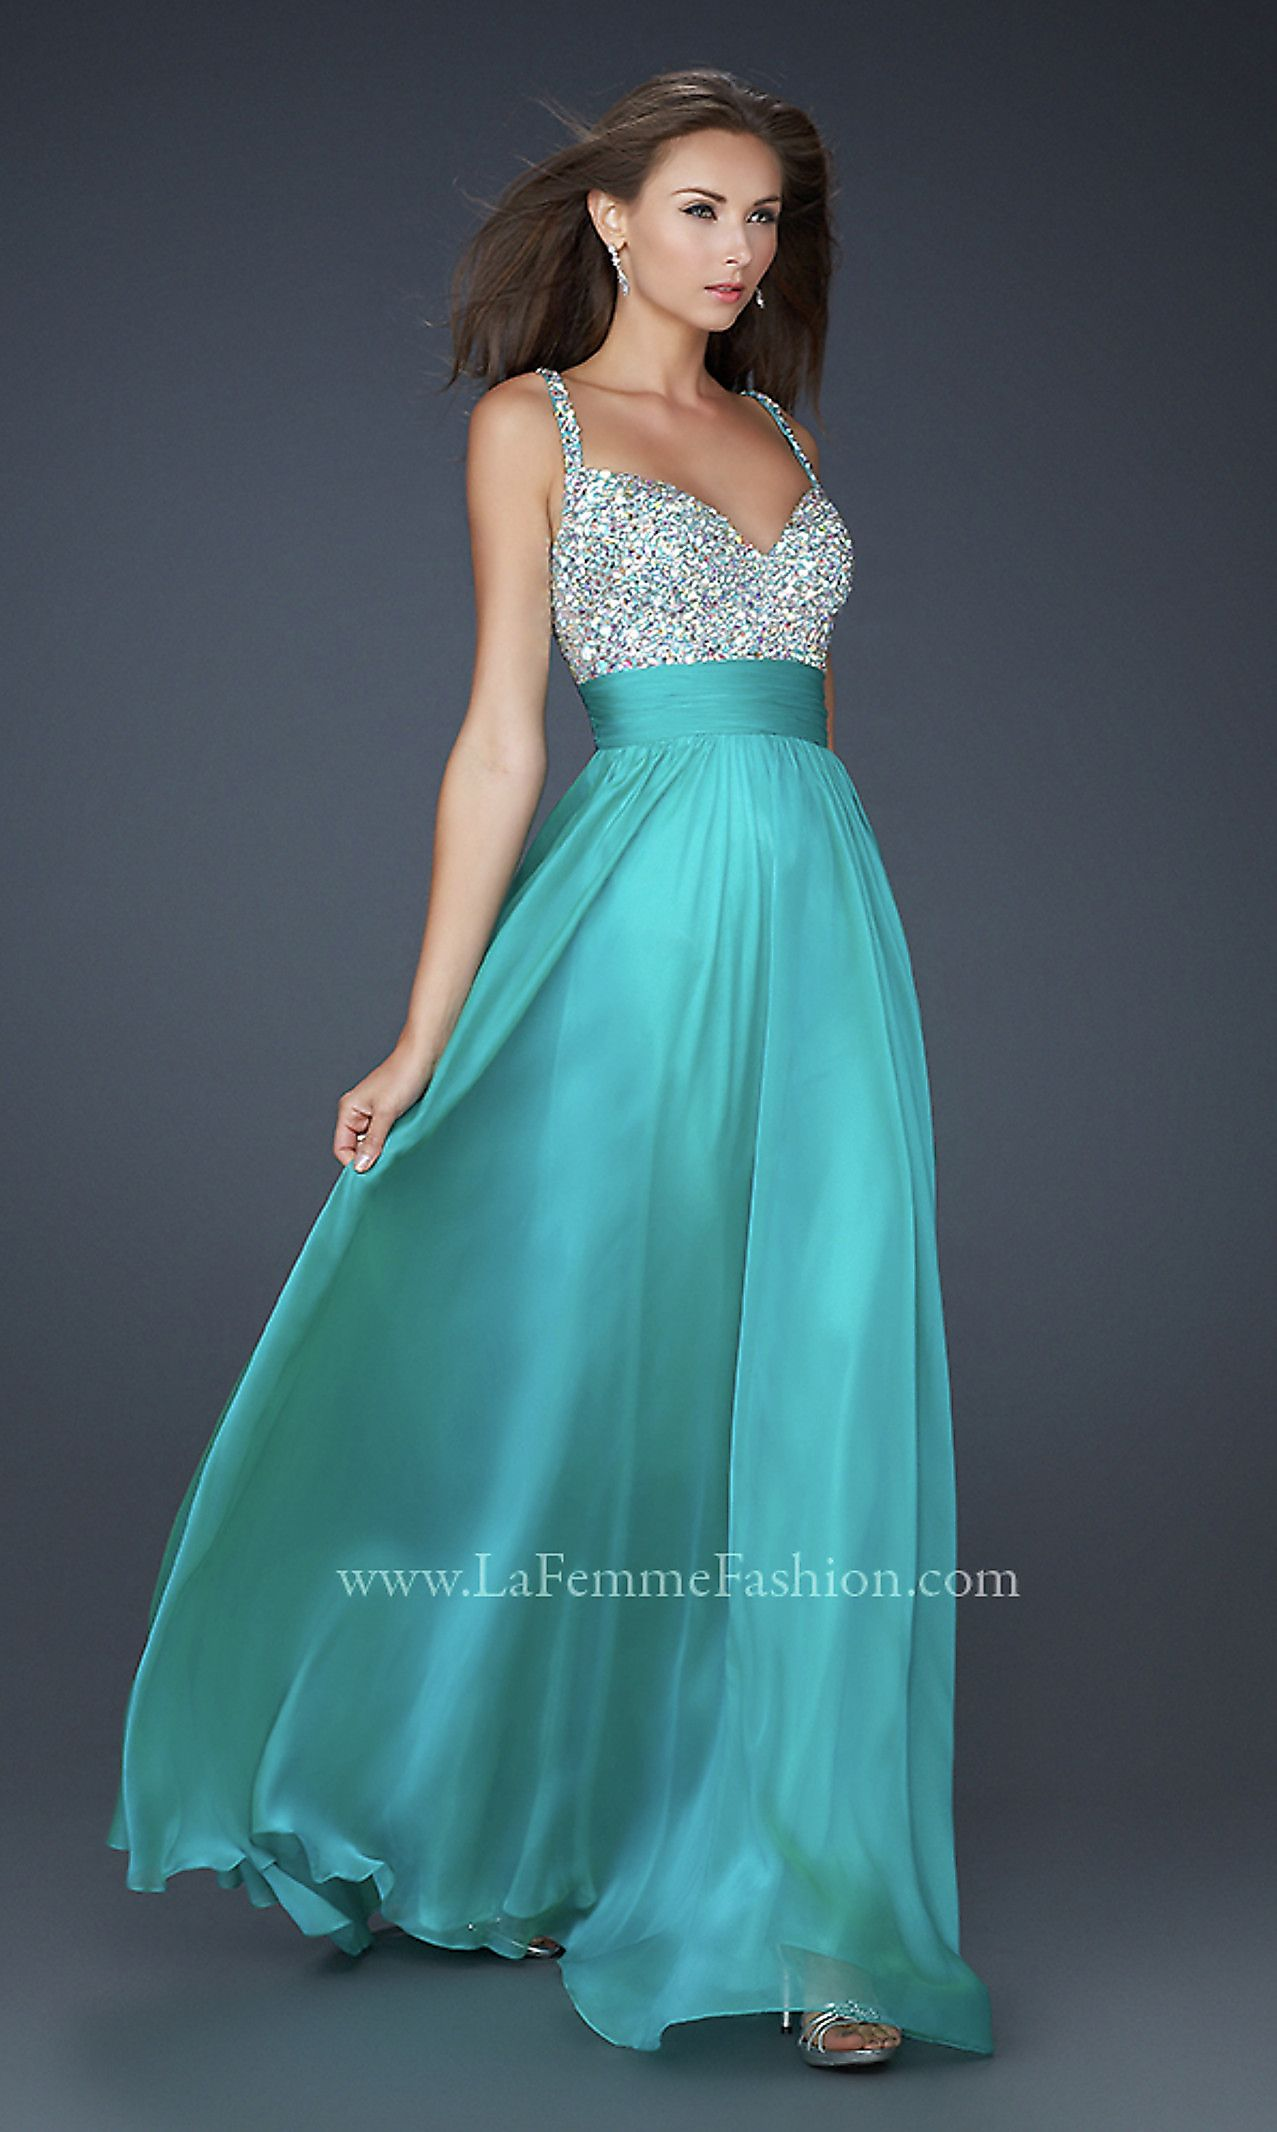 Ooh, a really pretty long gown! I\'m short, so I need something more ...